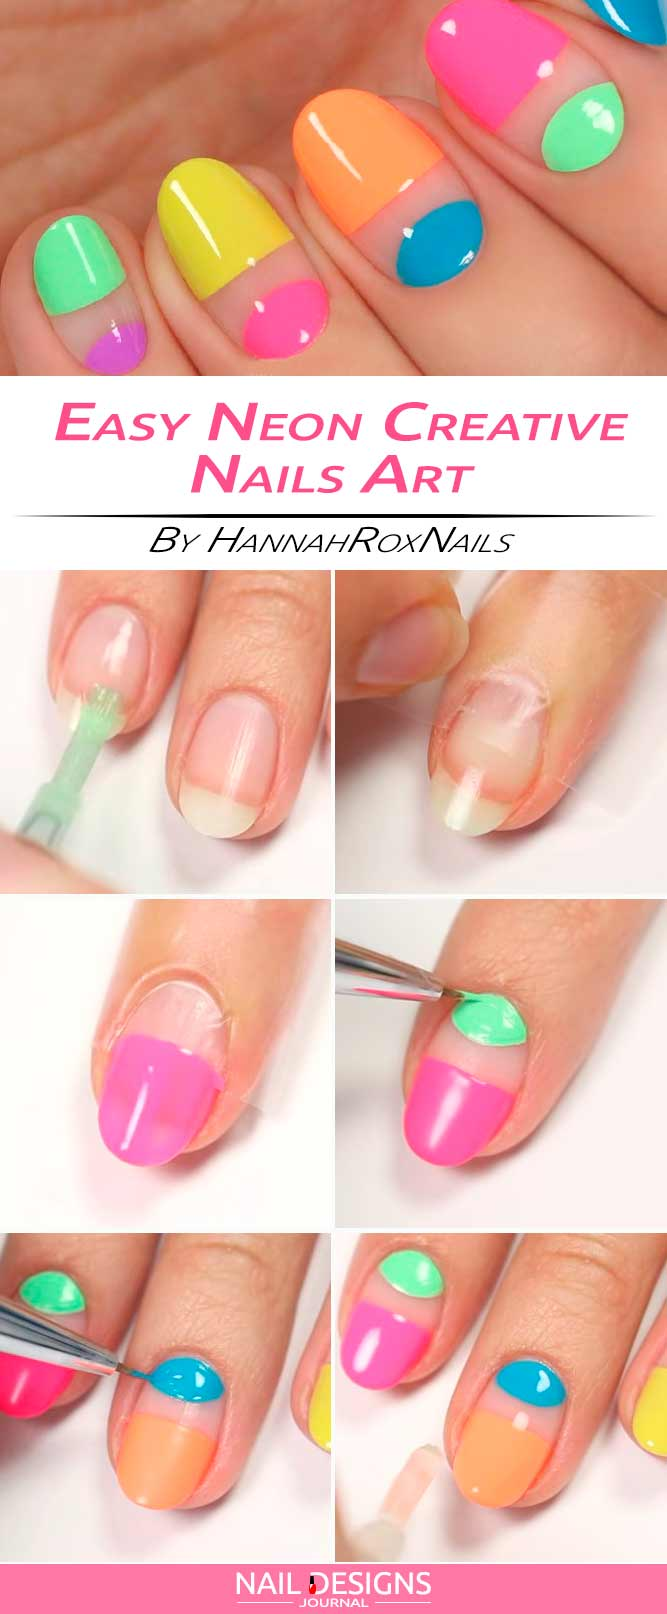 Easy Neon Creative Nail Design